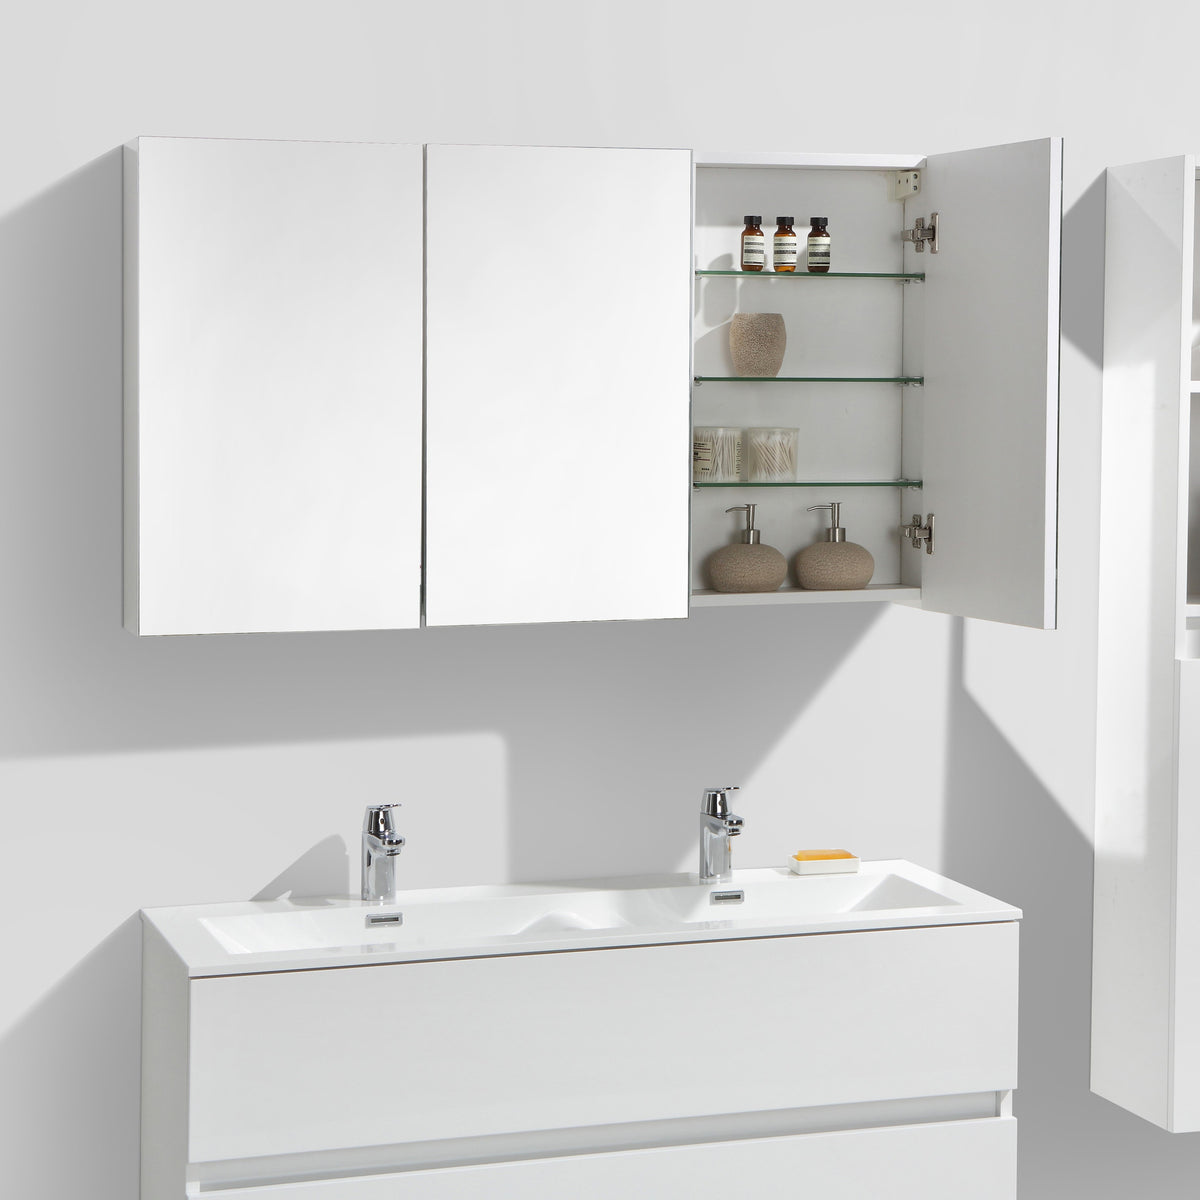 armoire de toilette bloc miroir siena largeur 120 cm blanc laqu le monde du bain. Black Bedroom Furniture Sets. Home Design Ideas